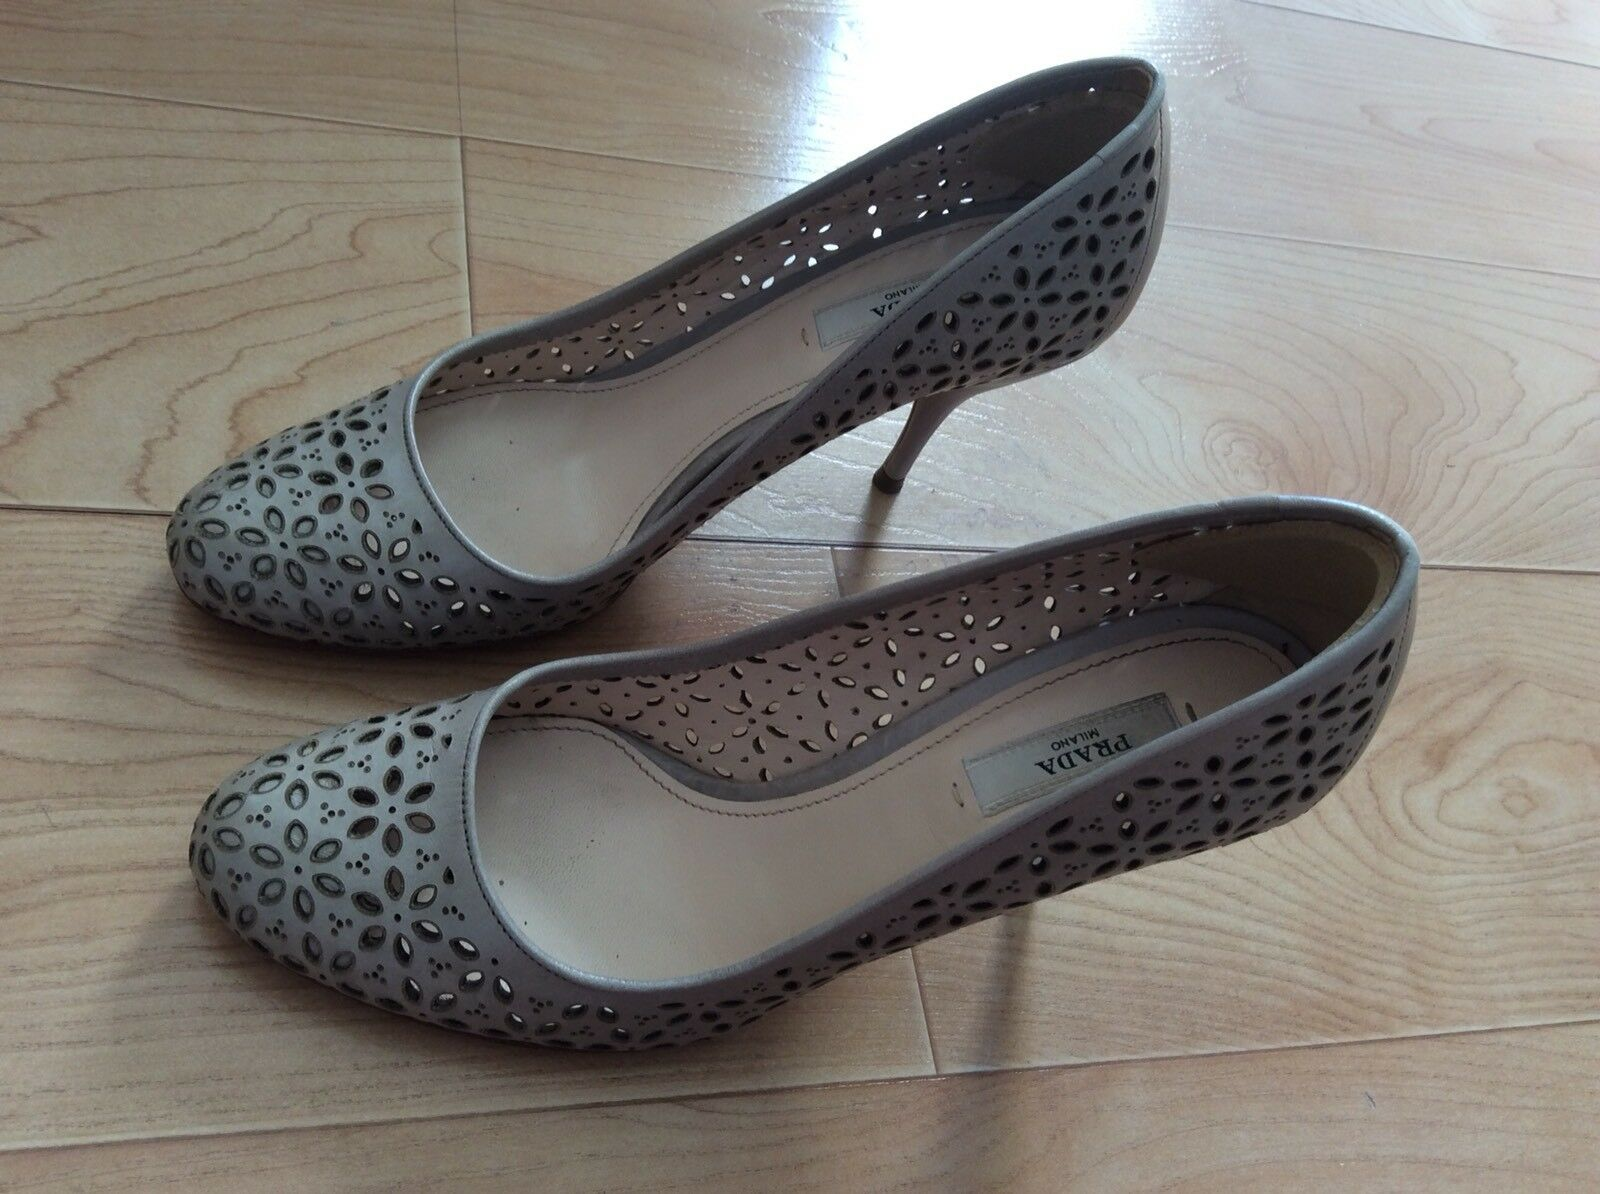 PRADA Milano Decolte Powder Perforated Heels Pumps Size 37 Made In Italy